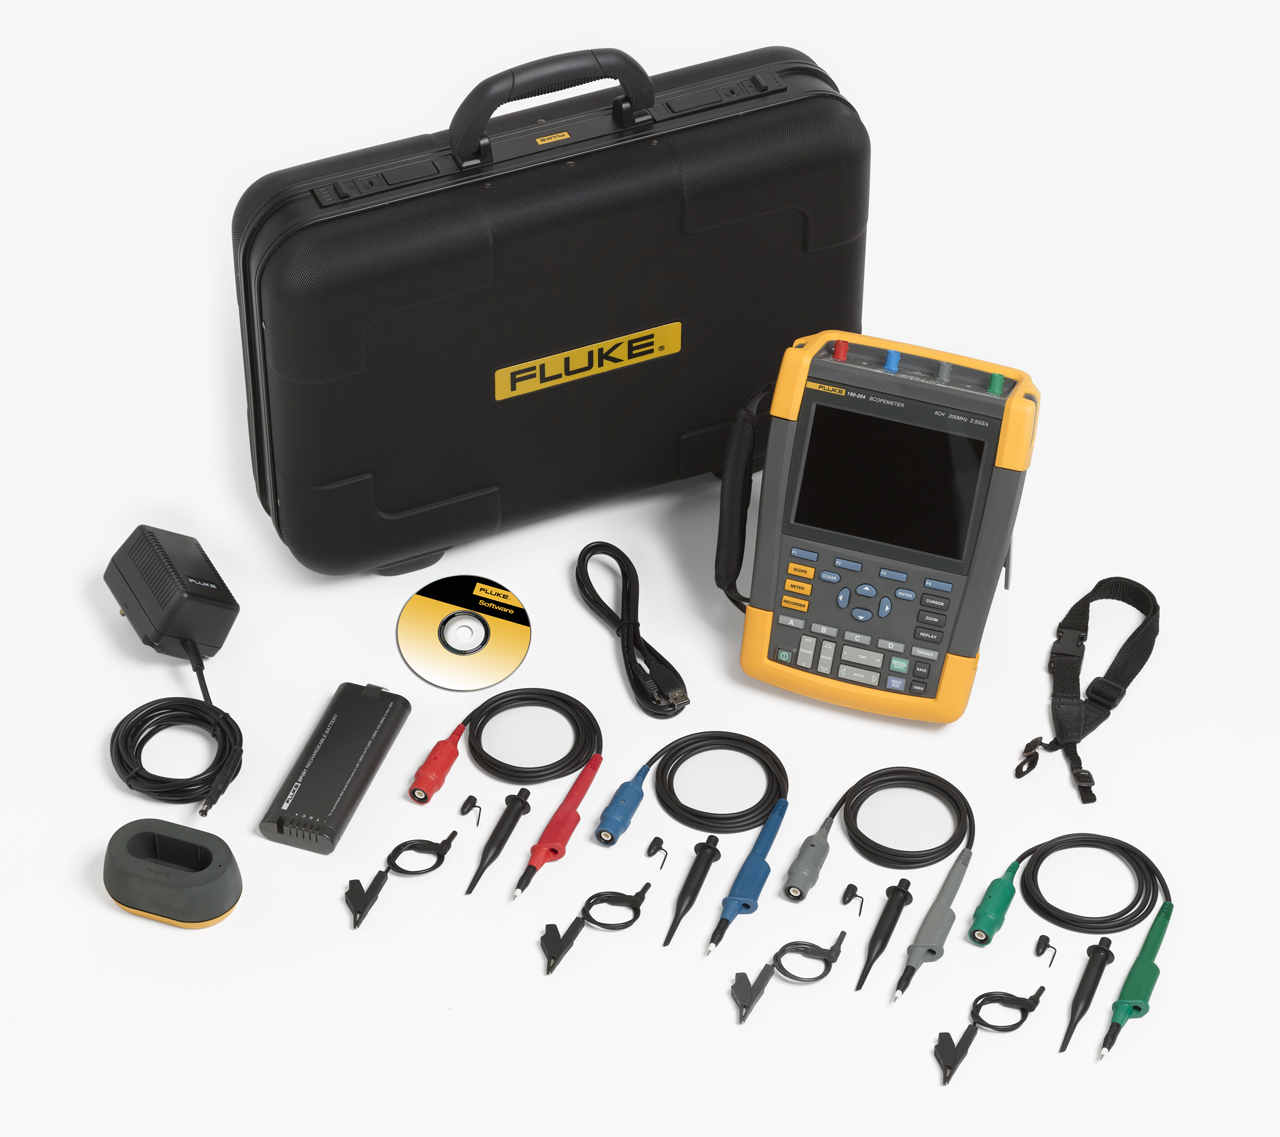 FLUKE 190-204 - ScopeMeter 4 Channel 200 MHZ Color